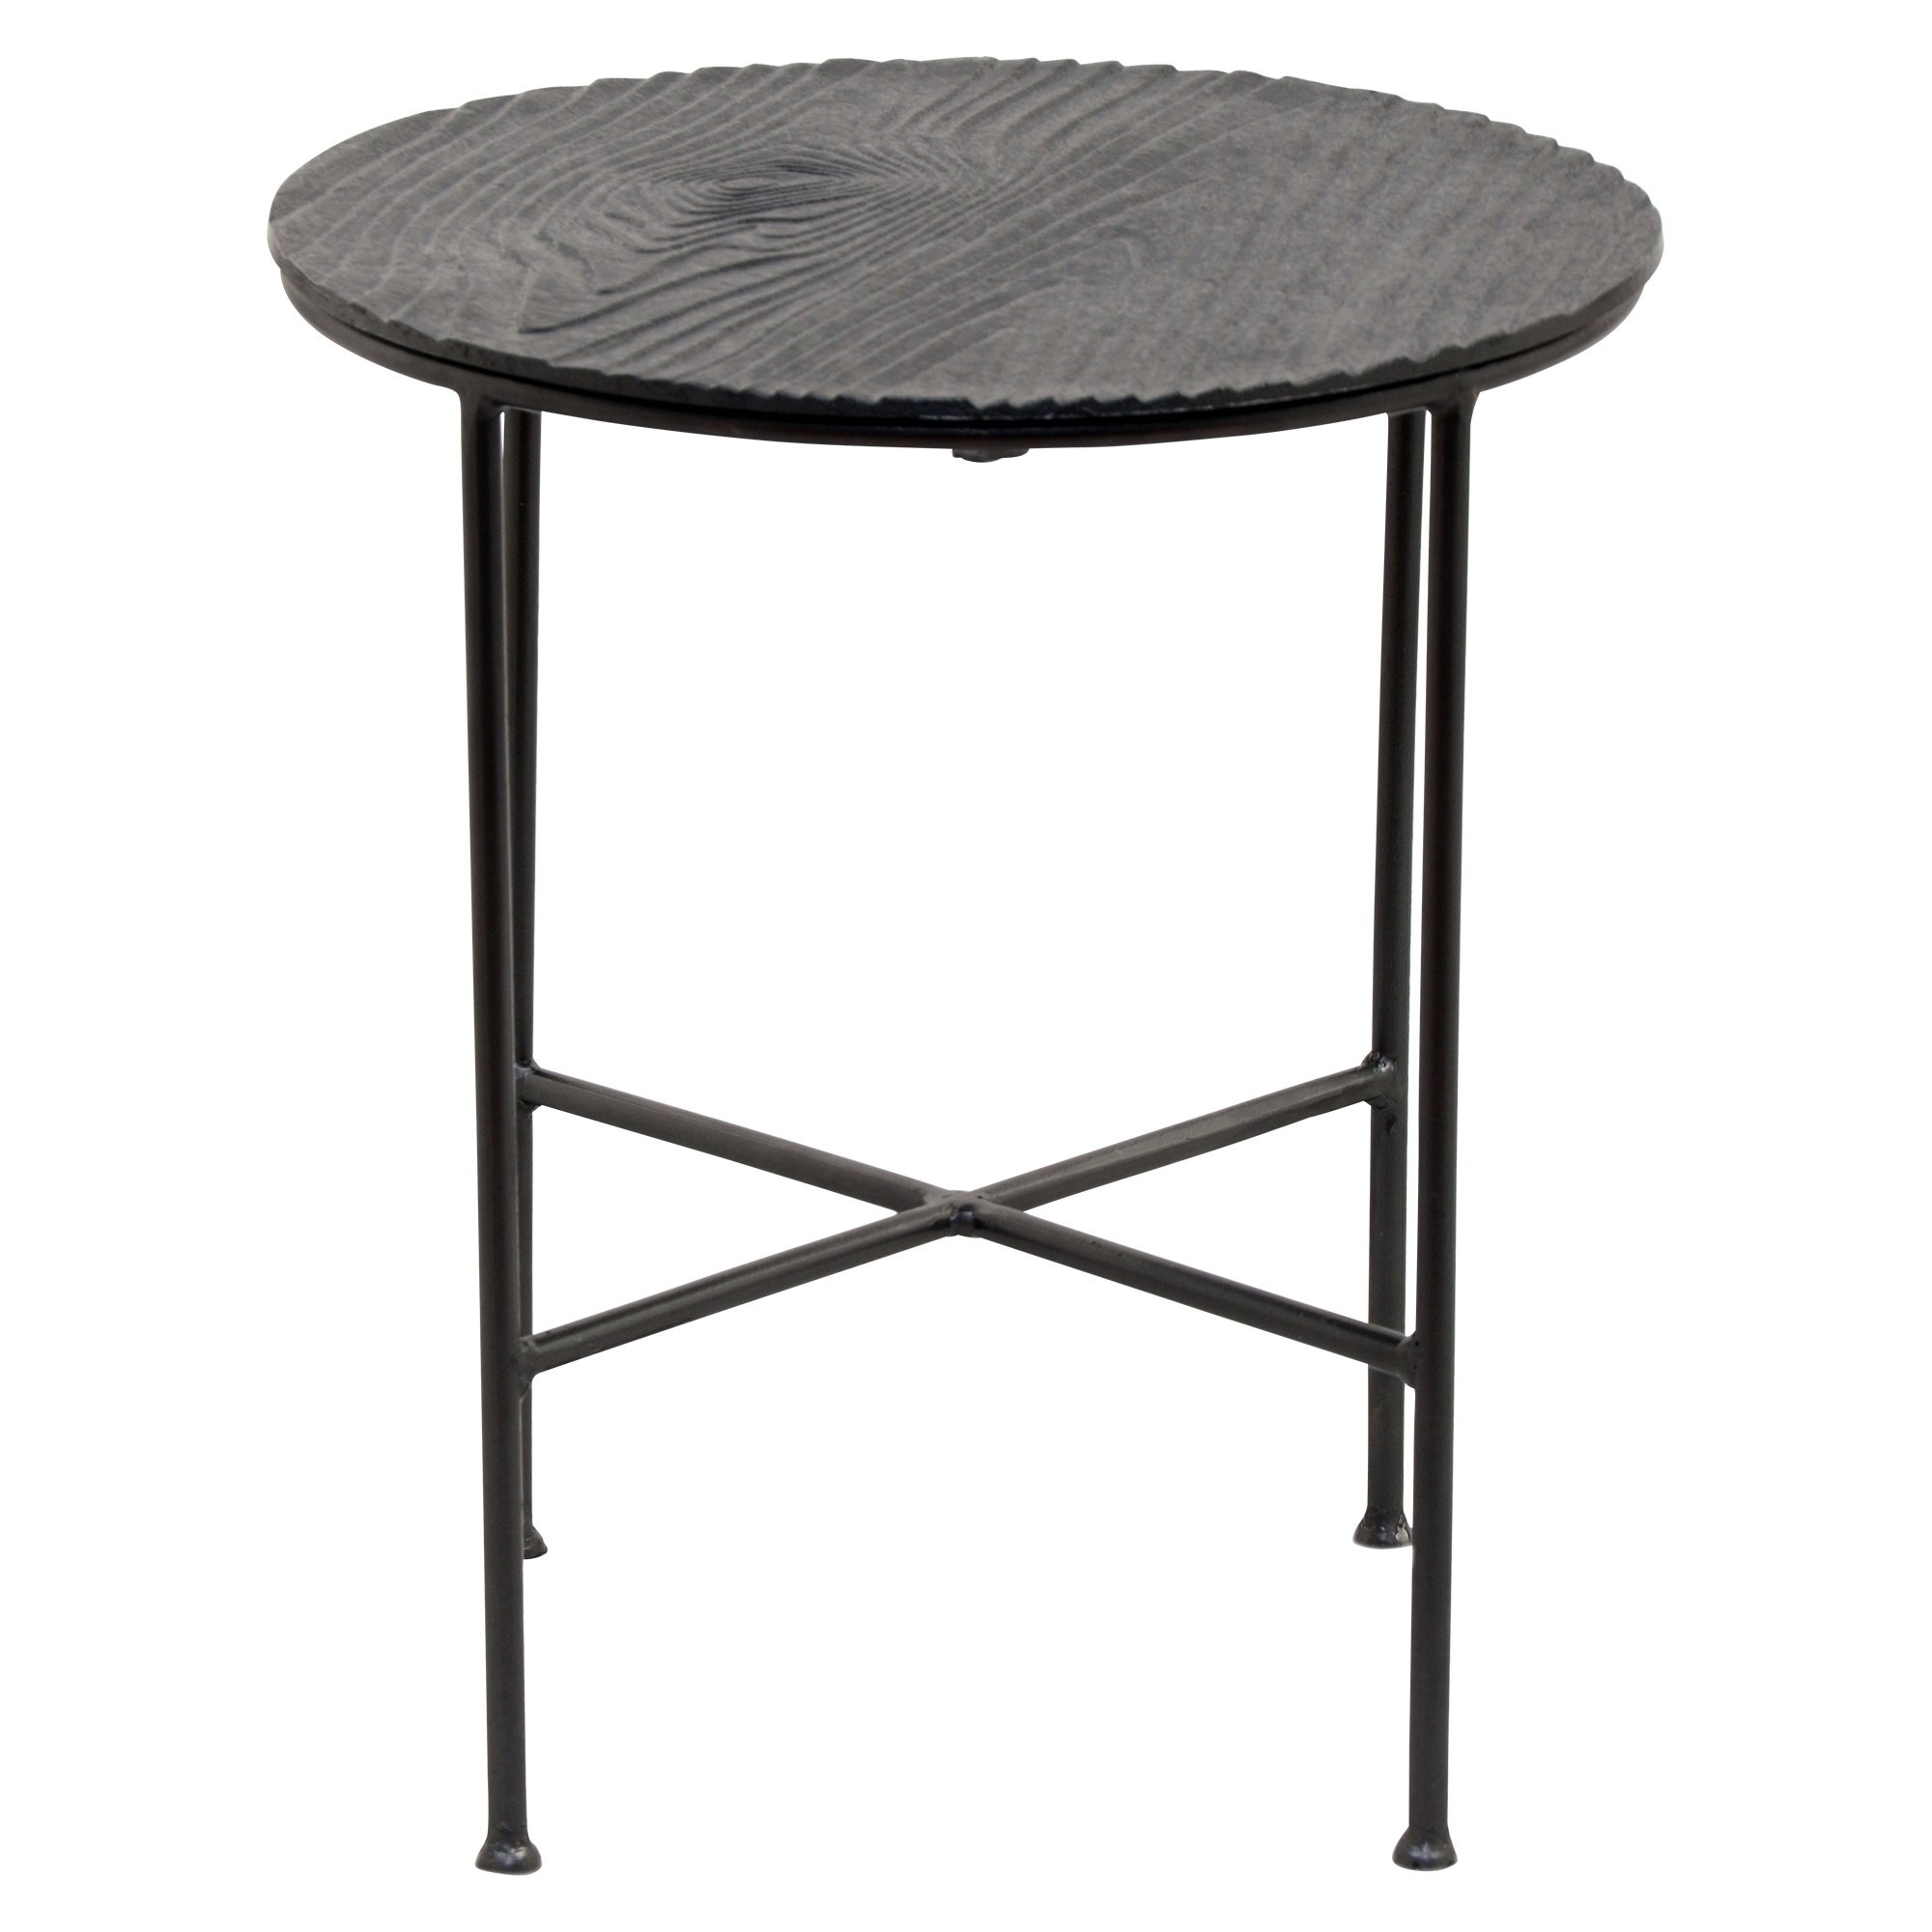 Preferred Bale Rustic Grey Round Cocktail Tables With Storage Pertaining To Shop Renwil Bale Grey Aluminum Round Accent Table – Free Shipping (View 7 of 20)